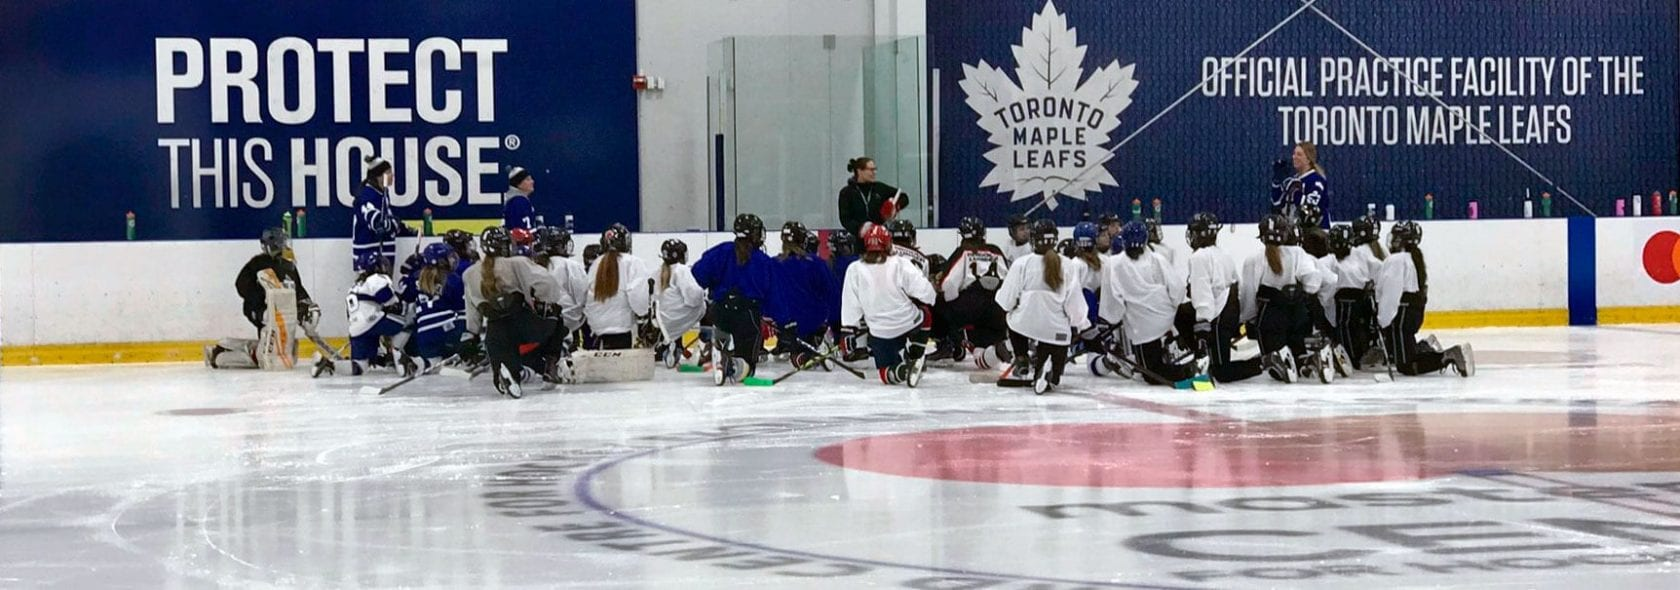 Toronto Furies Grindstone Fundraiser will leave a lifetime of memories.